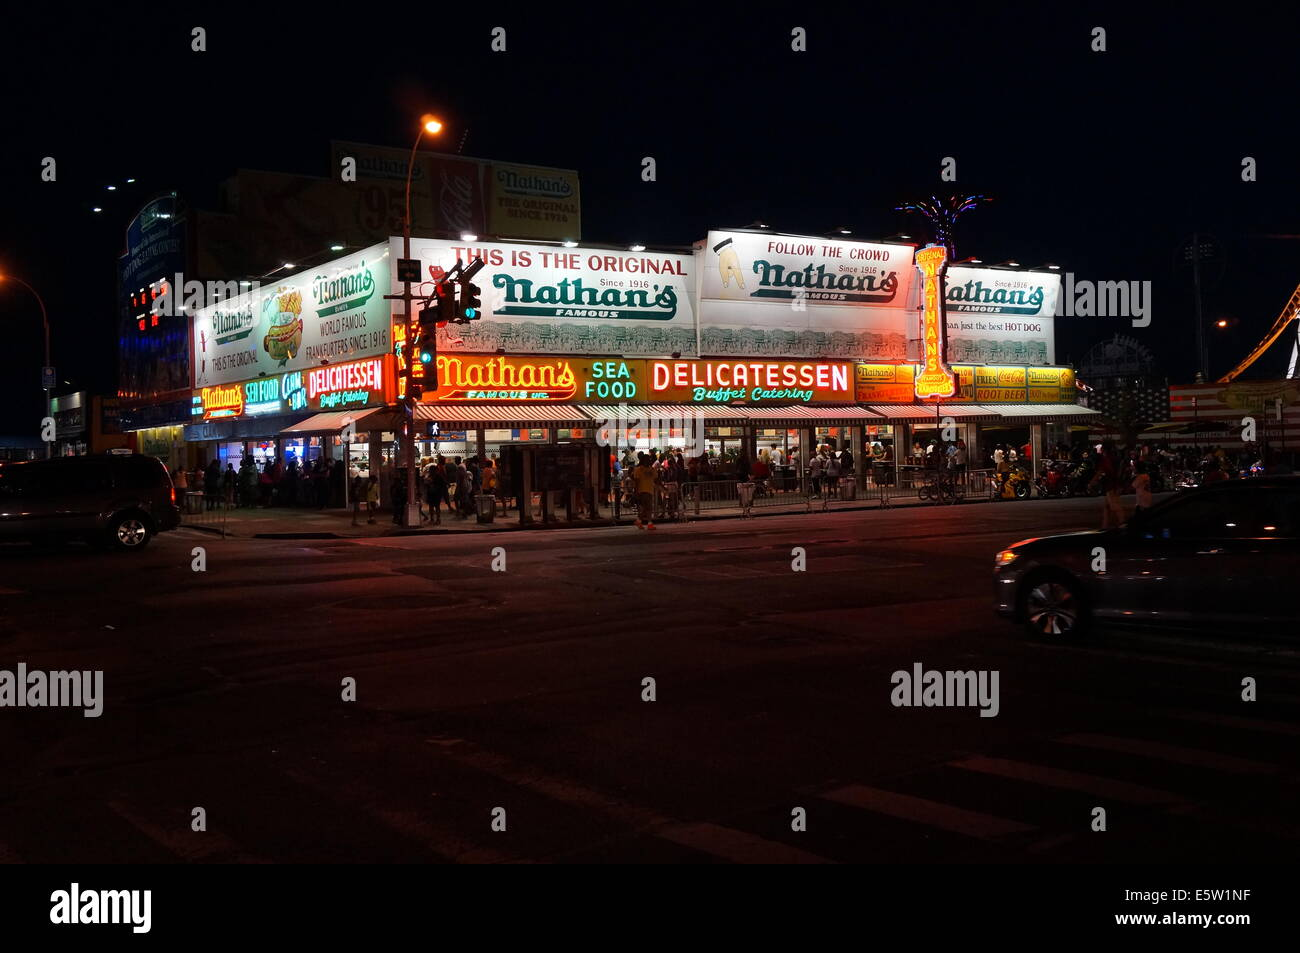 Nathans Famous Coney Island Account